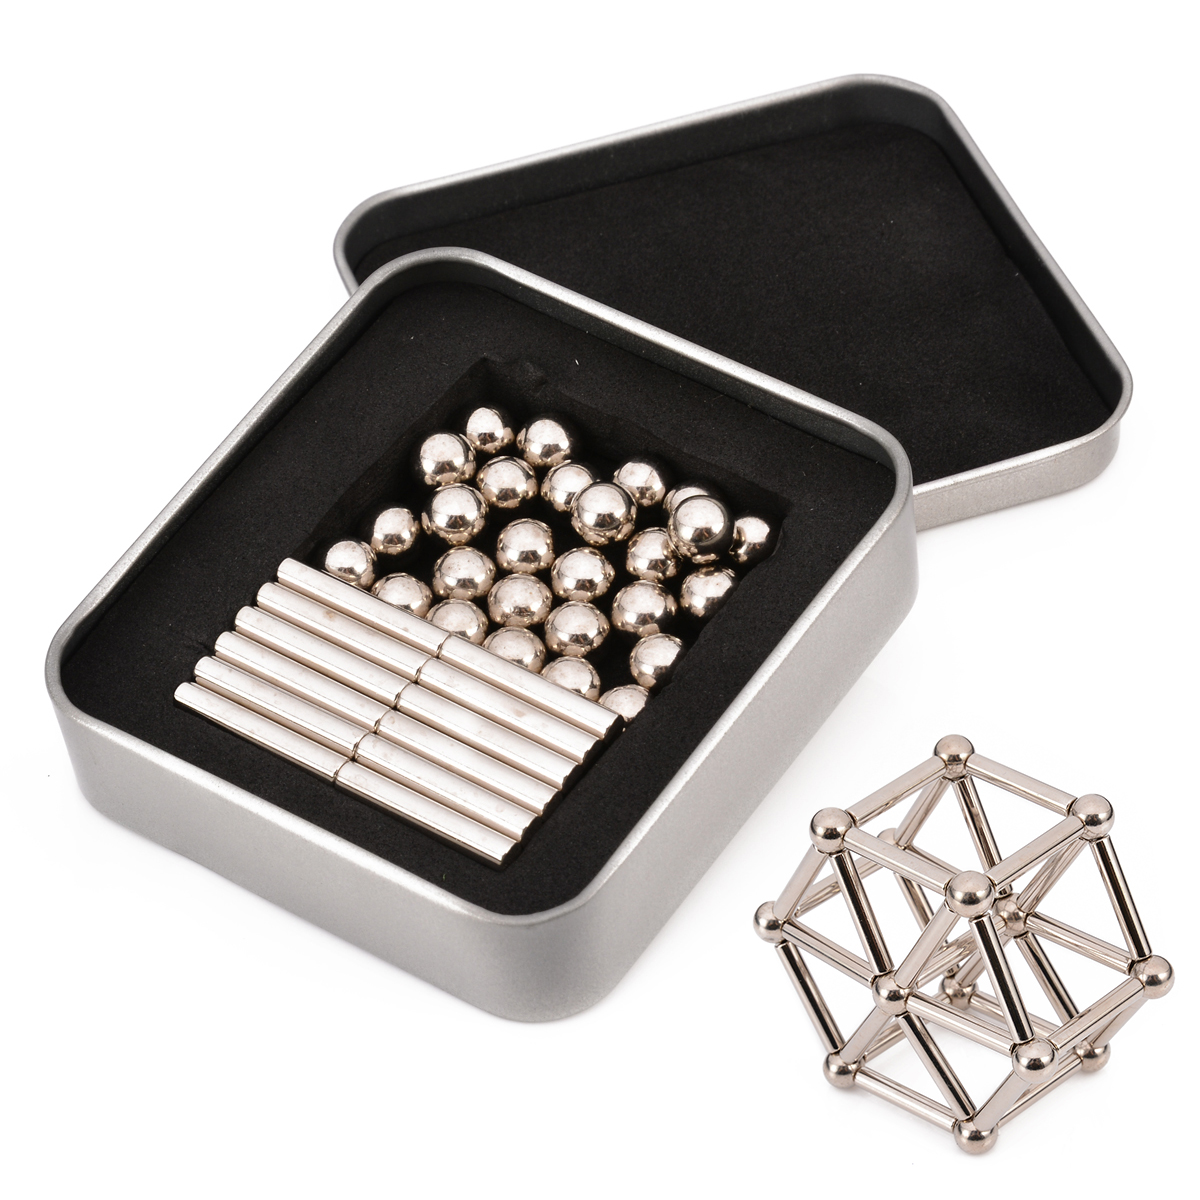 63pcs Strong Neodymium Magnet Sliver Bars & Metal Balls Creative Magnets NdFeB Permanent Magnets Gift Mayitr Magnetic Materials orient orient xcaa002b